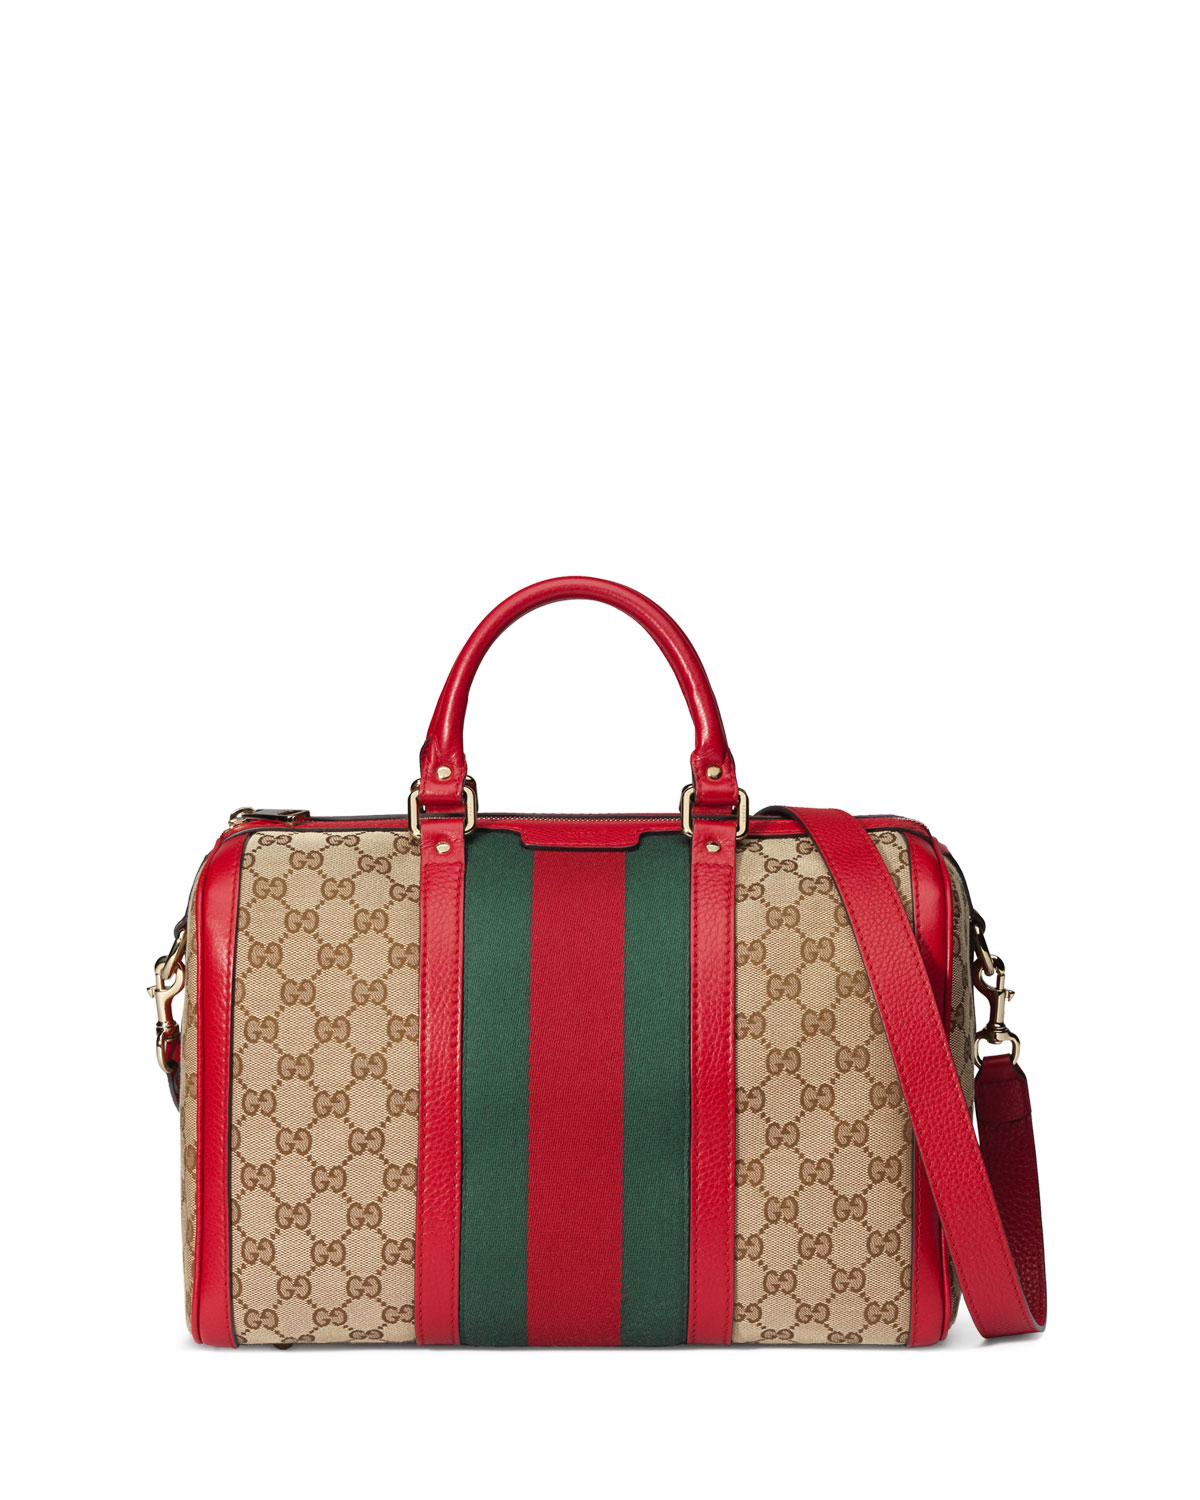 d2cfce48b1f Gucci Vintage Web Original GG Canvas Boston Bag